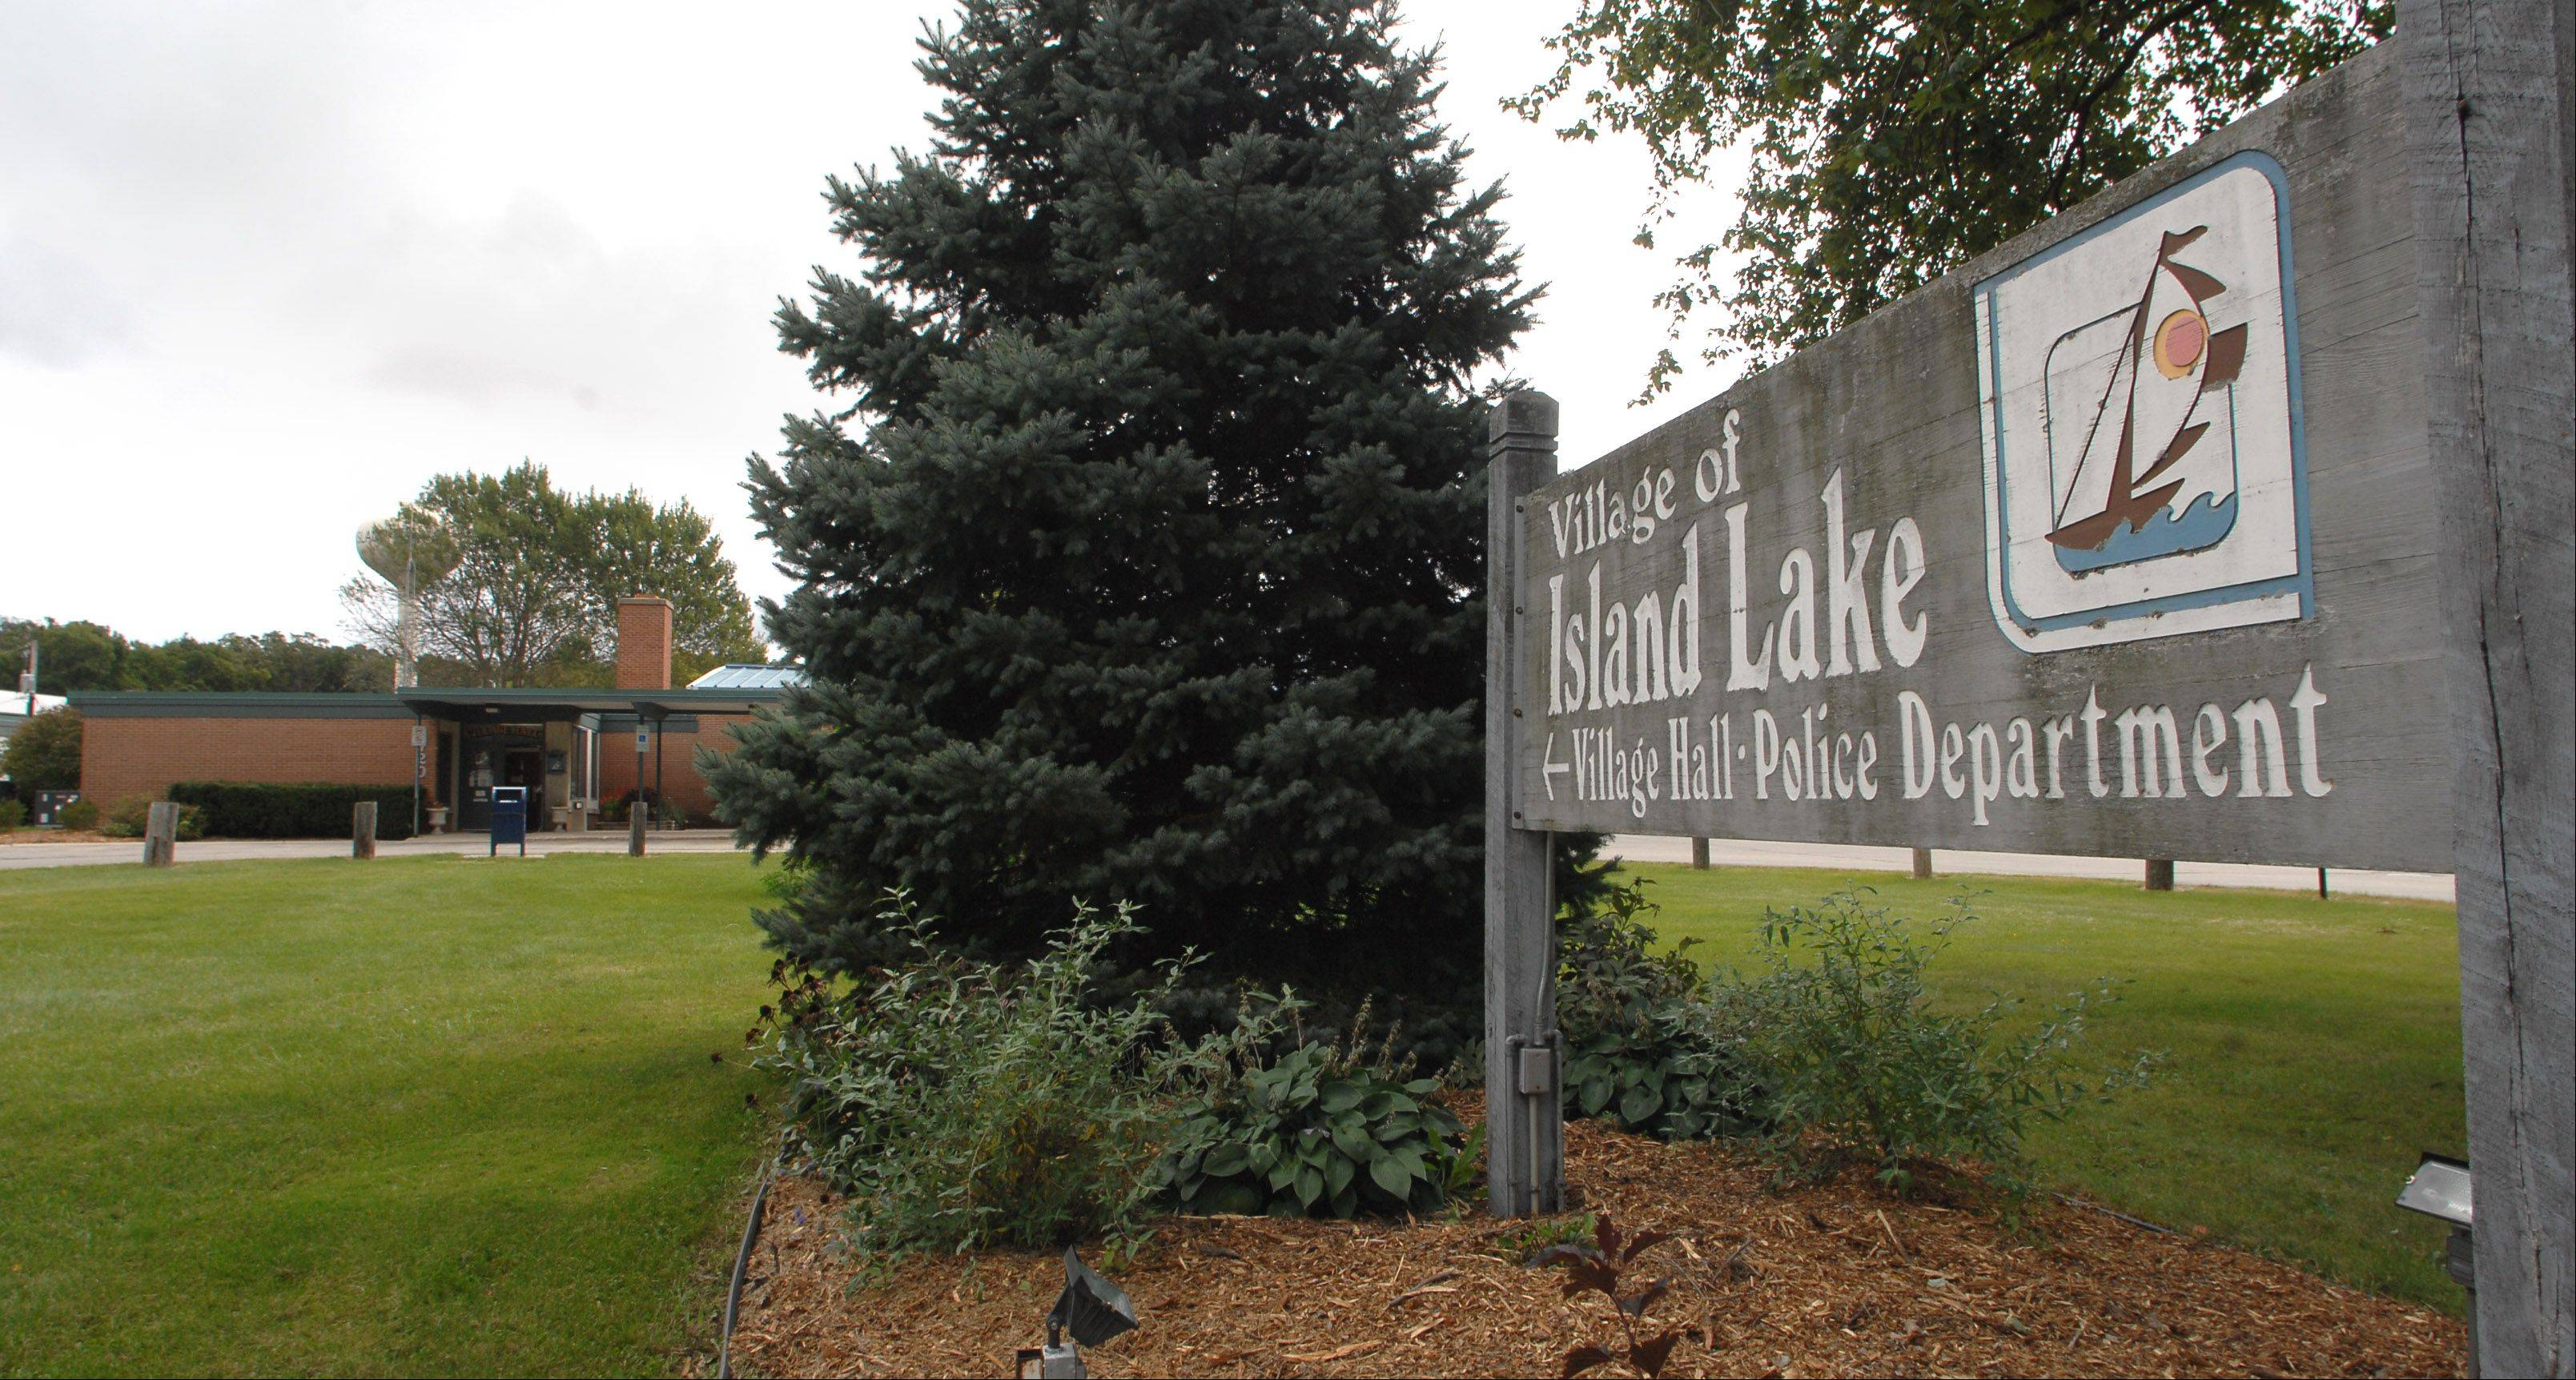 Park eyed for new Island Lake village hall, cop station